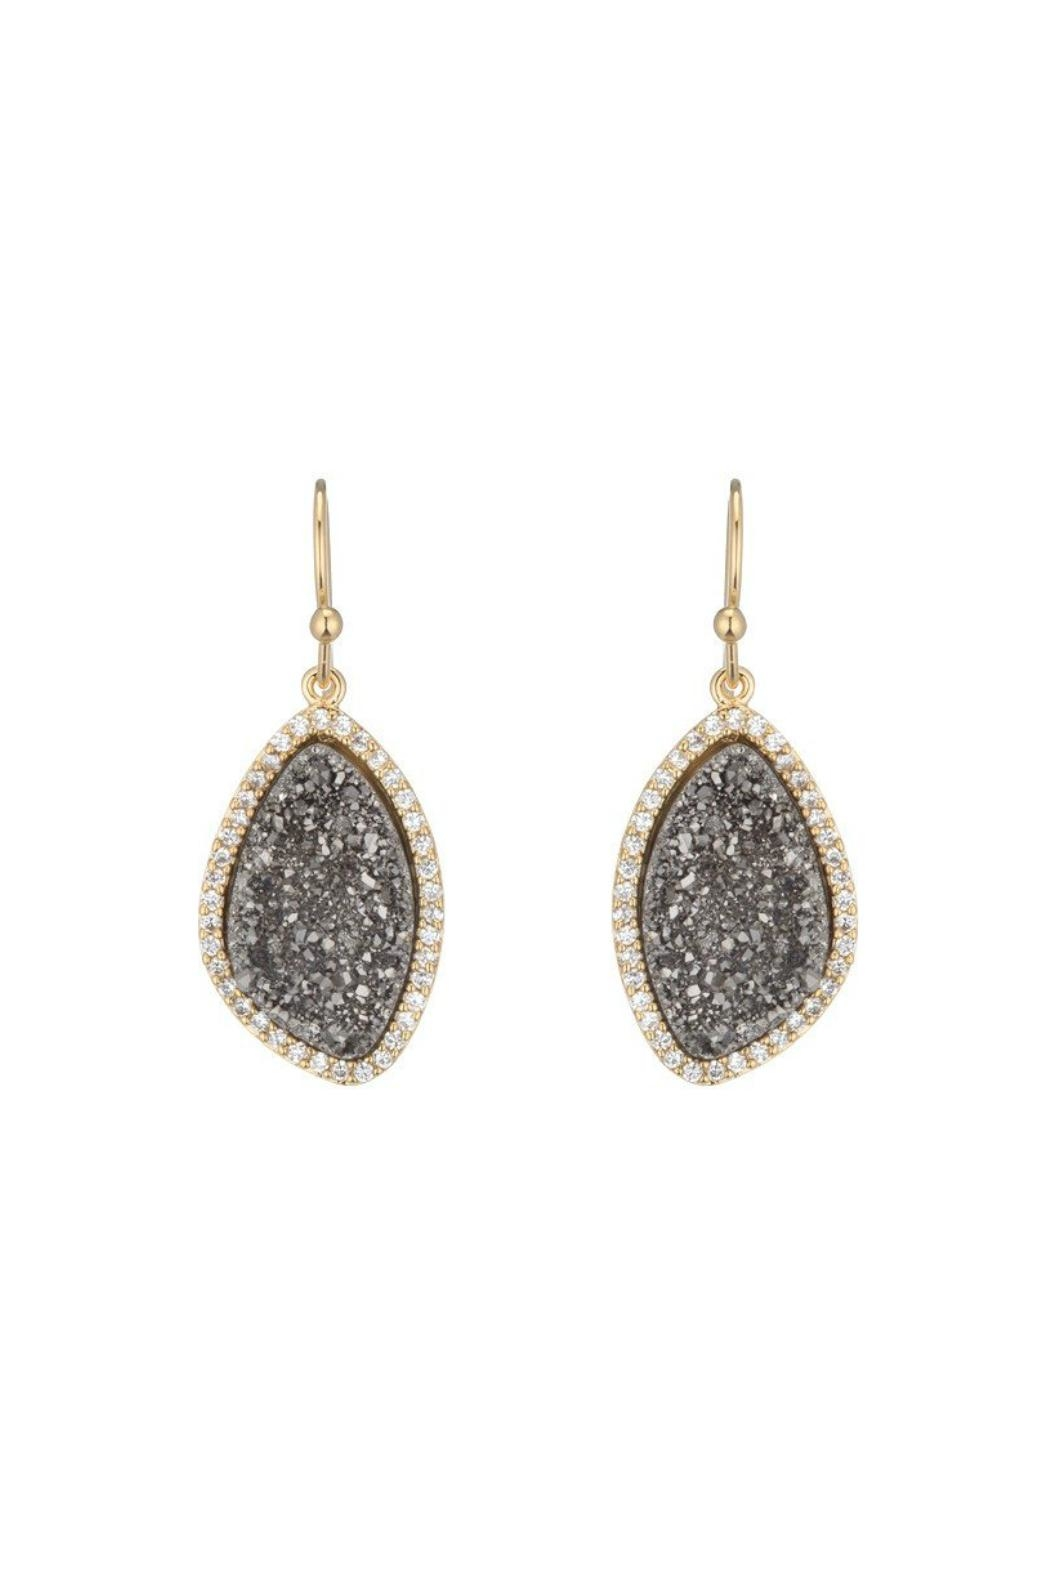 Gemma Collection Titanium Druzy Earrings - Main Image